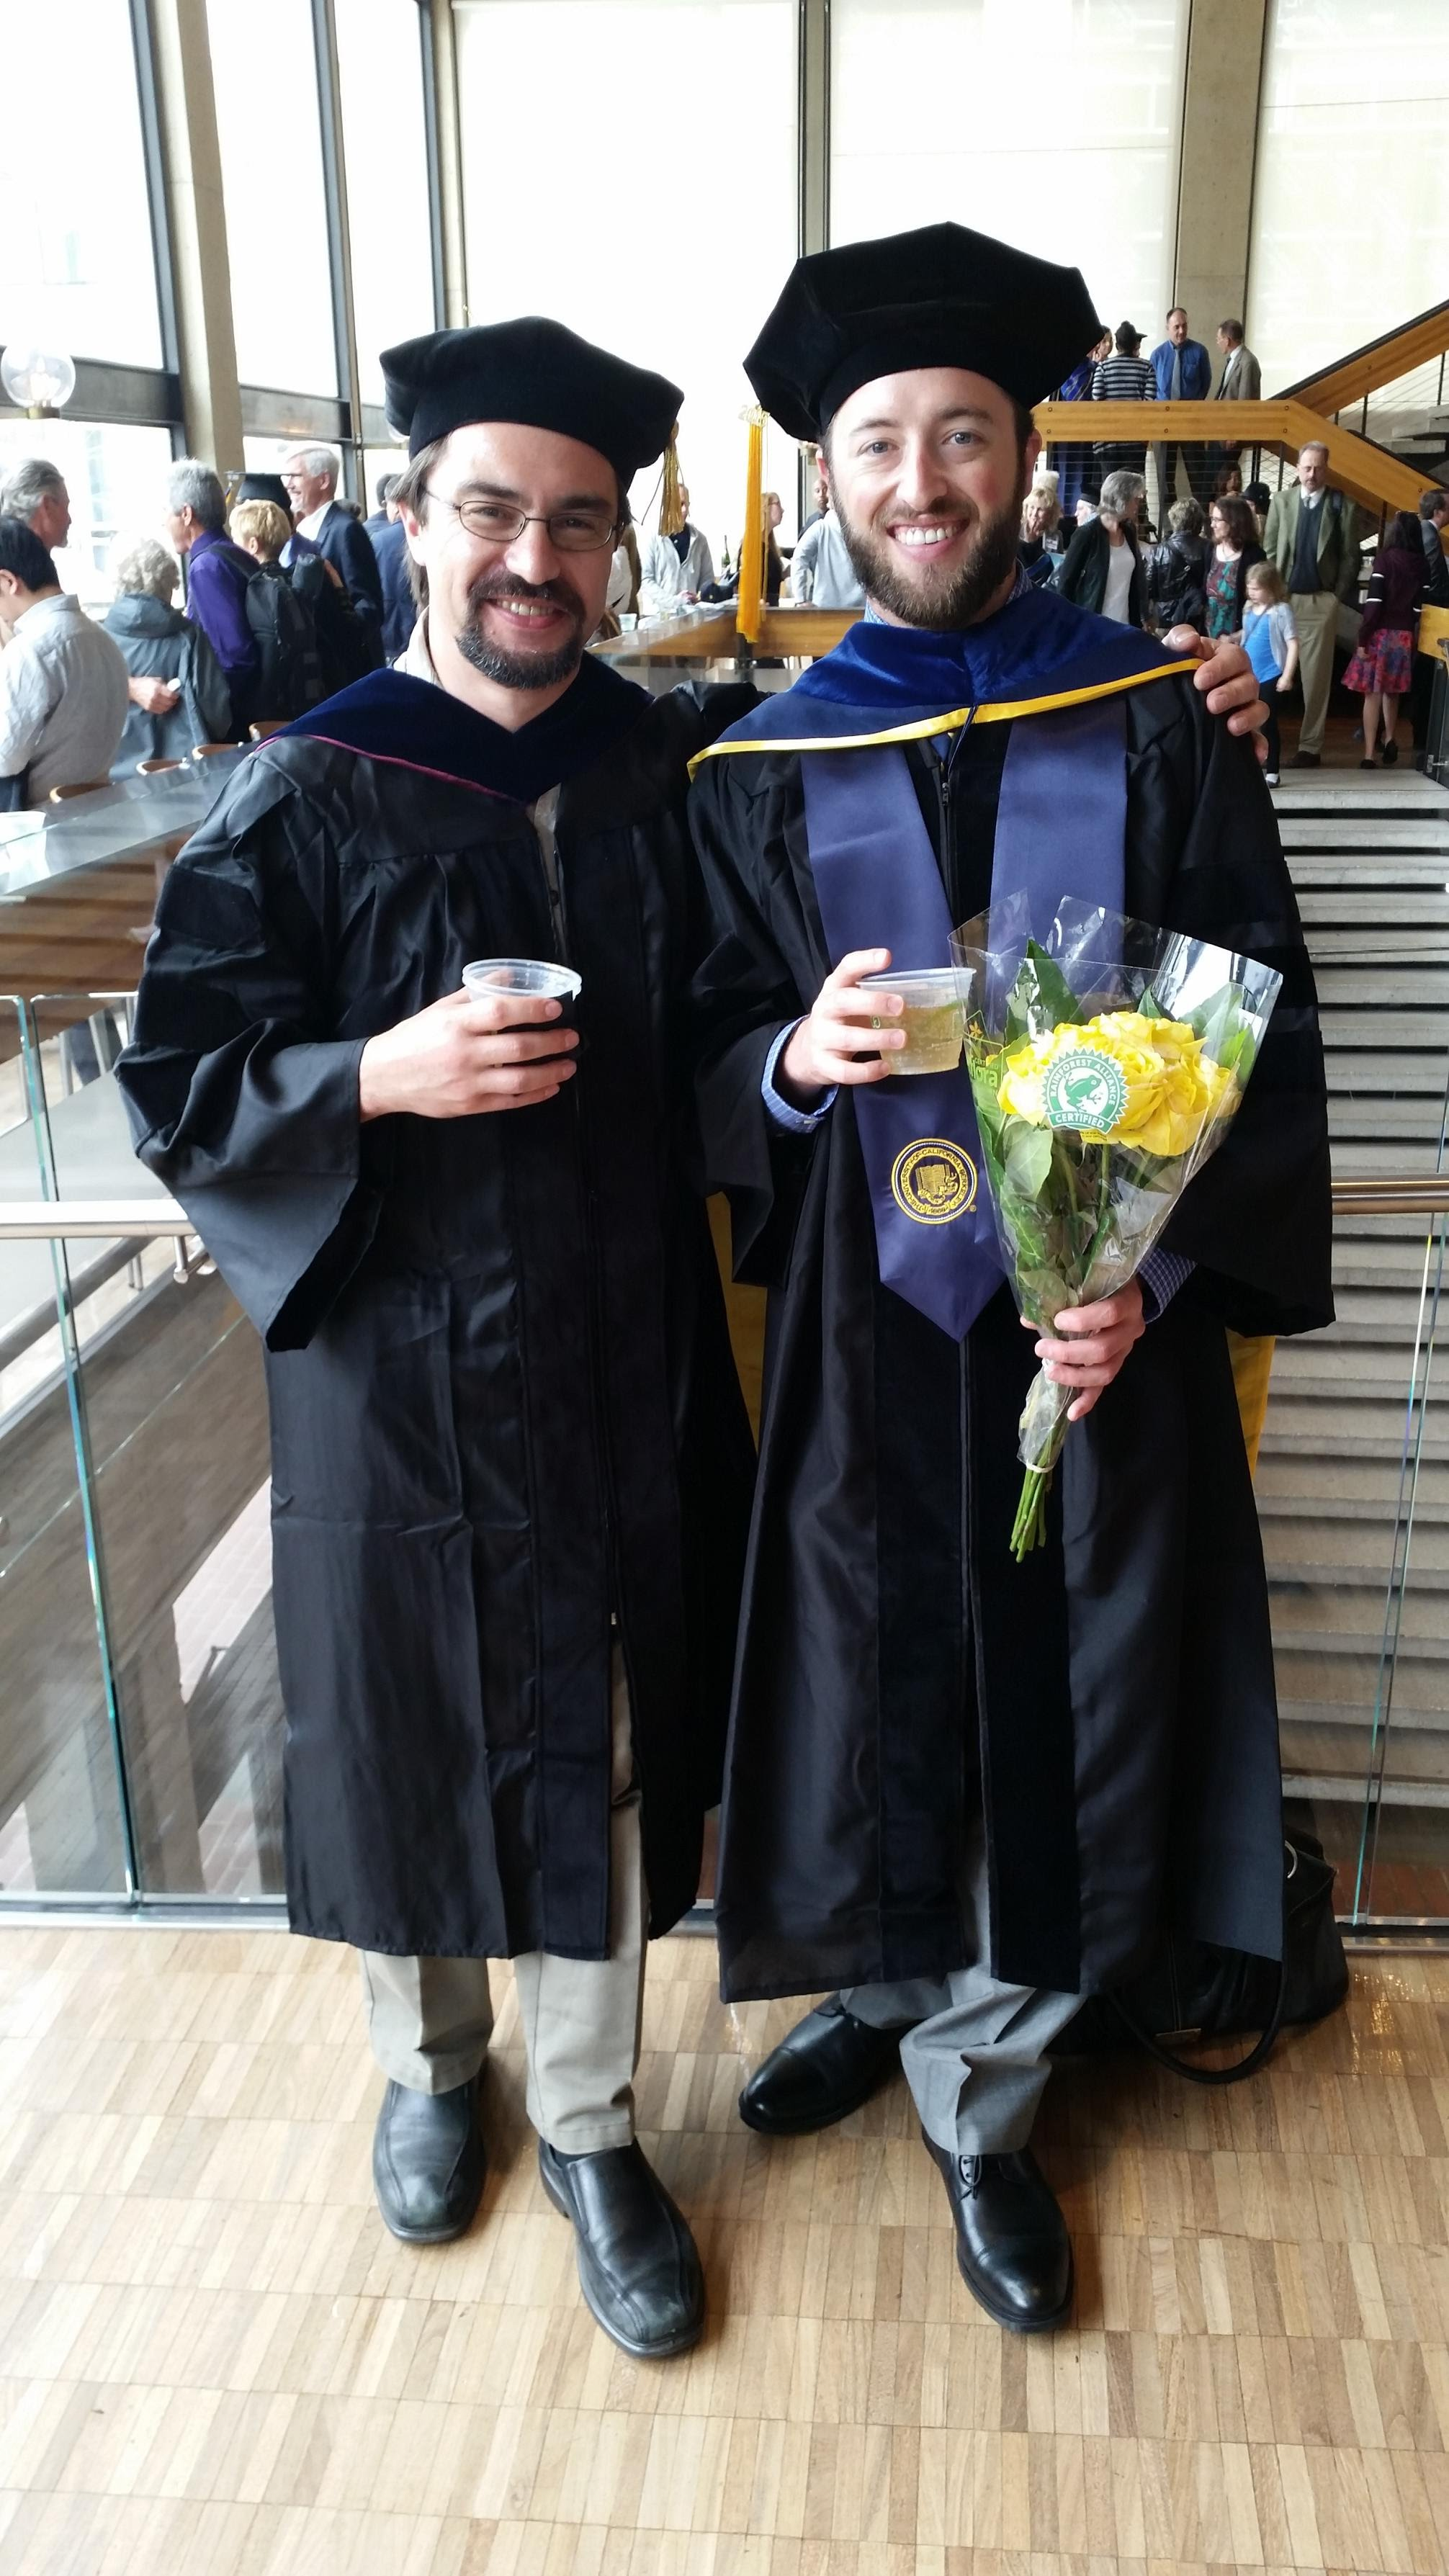 Jon and Yury at Jon's graduation ceremony.